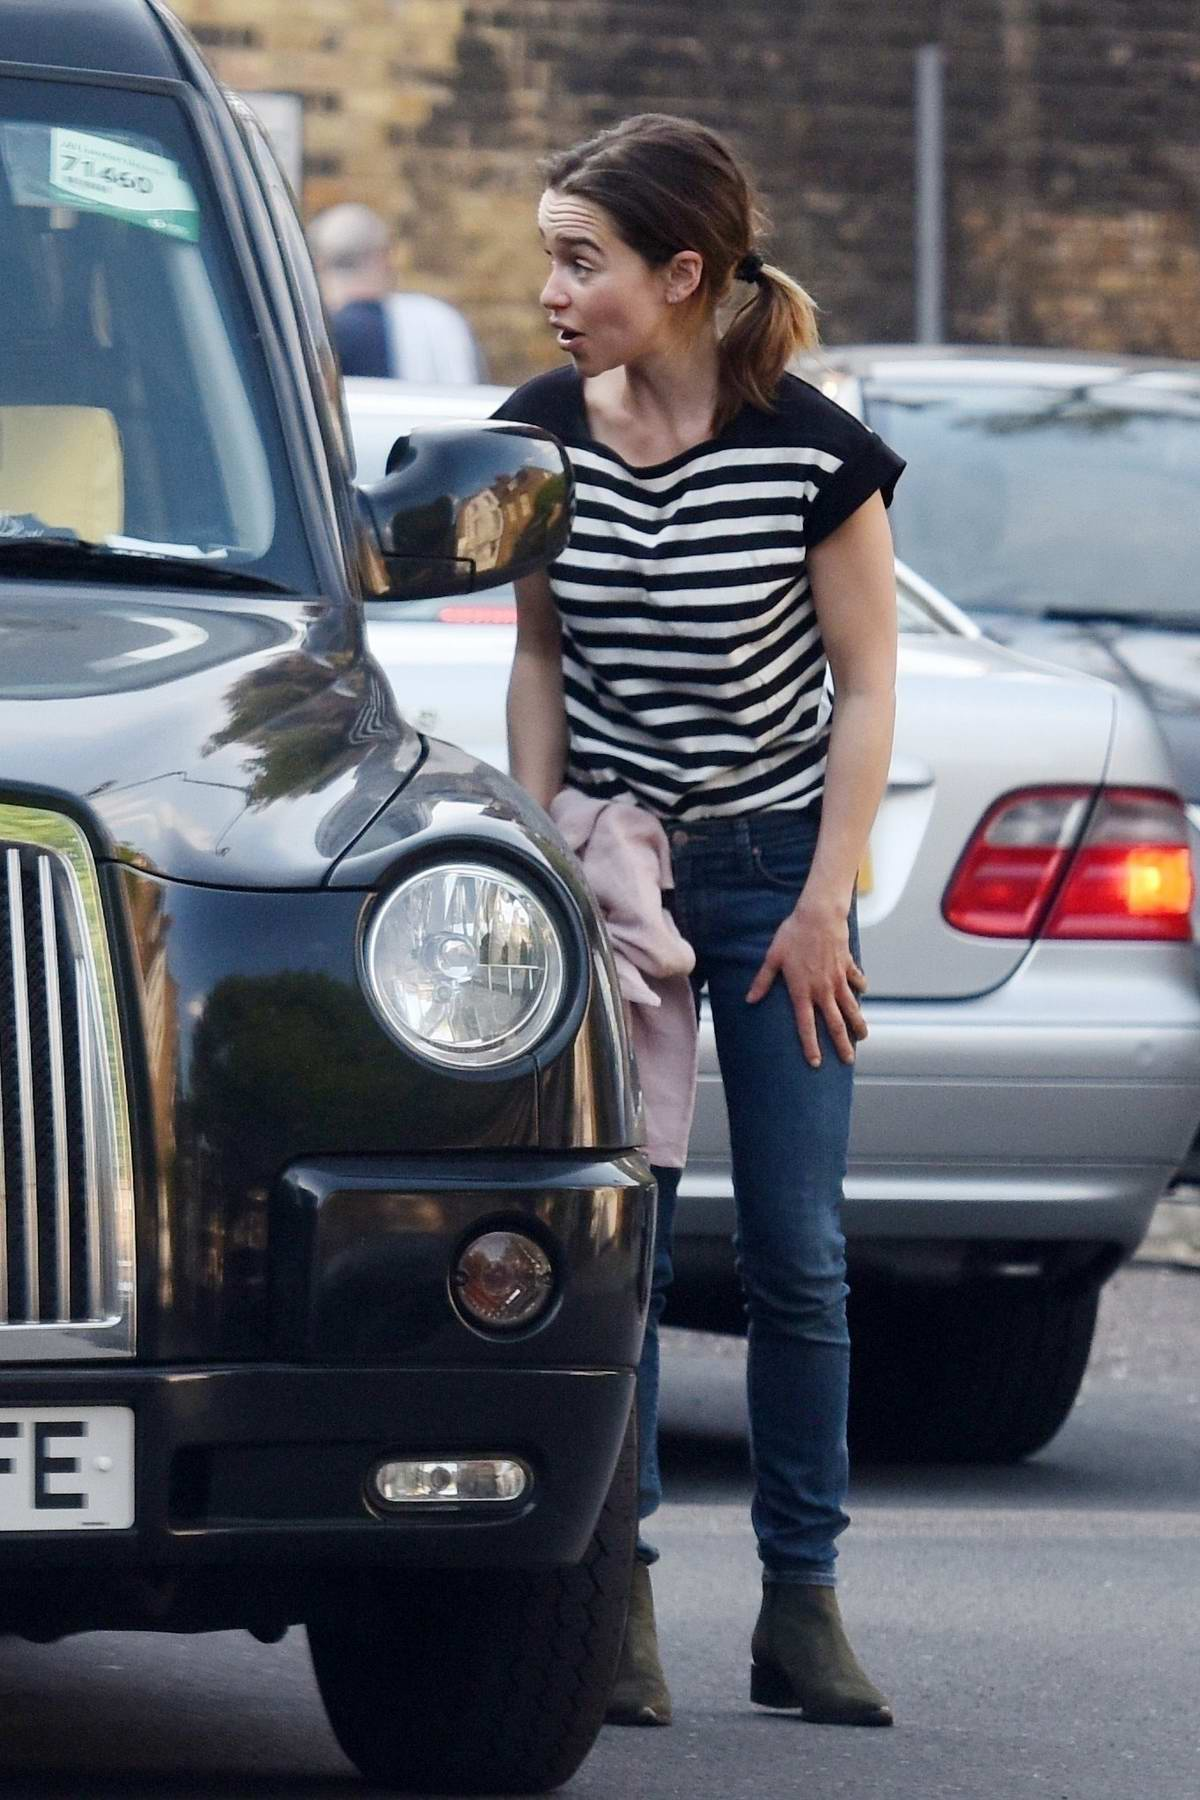 Emilia Clarke seen asking a cab driver to deliver a package in London, UK